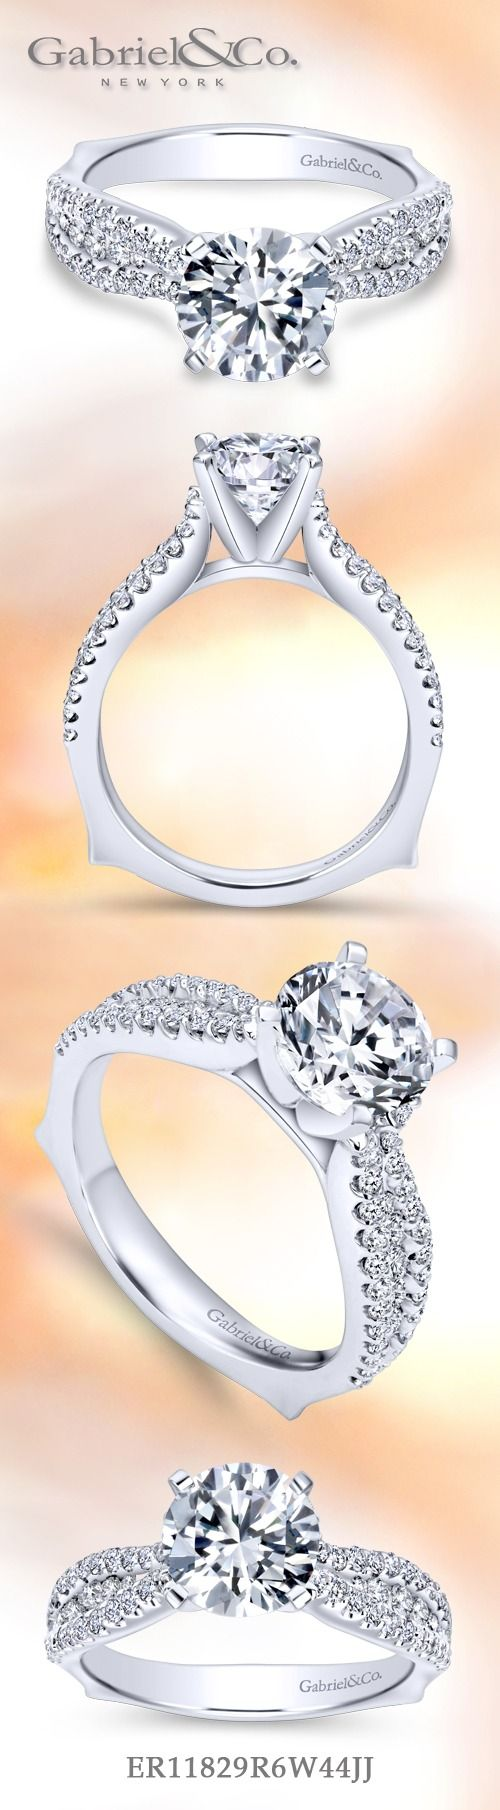 Gabriel & Co. - Voted #1 Most Preferred Fine Jewelry and Bridal Brand.  Meet Marley -14k White Gold Round Straight Engagement Ring that focuses on intertwined paths of diamonds that symbolize unity and love.